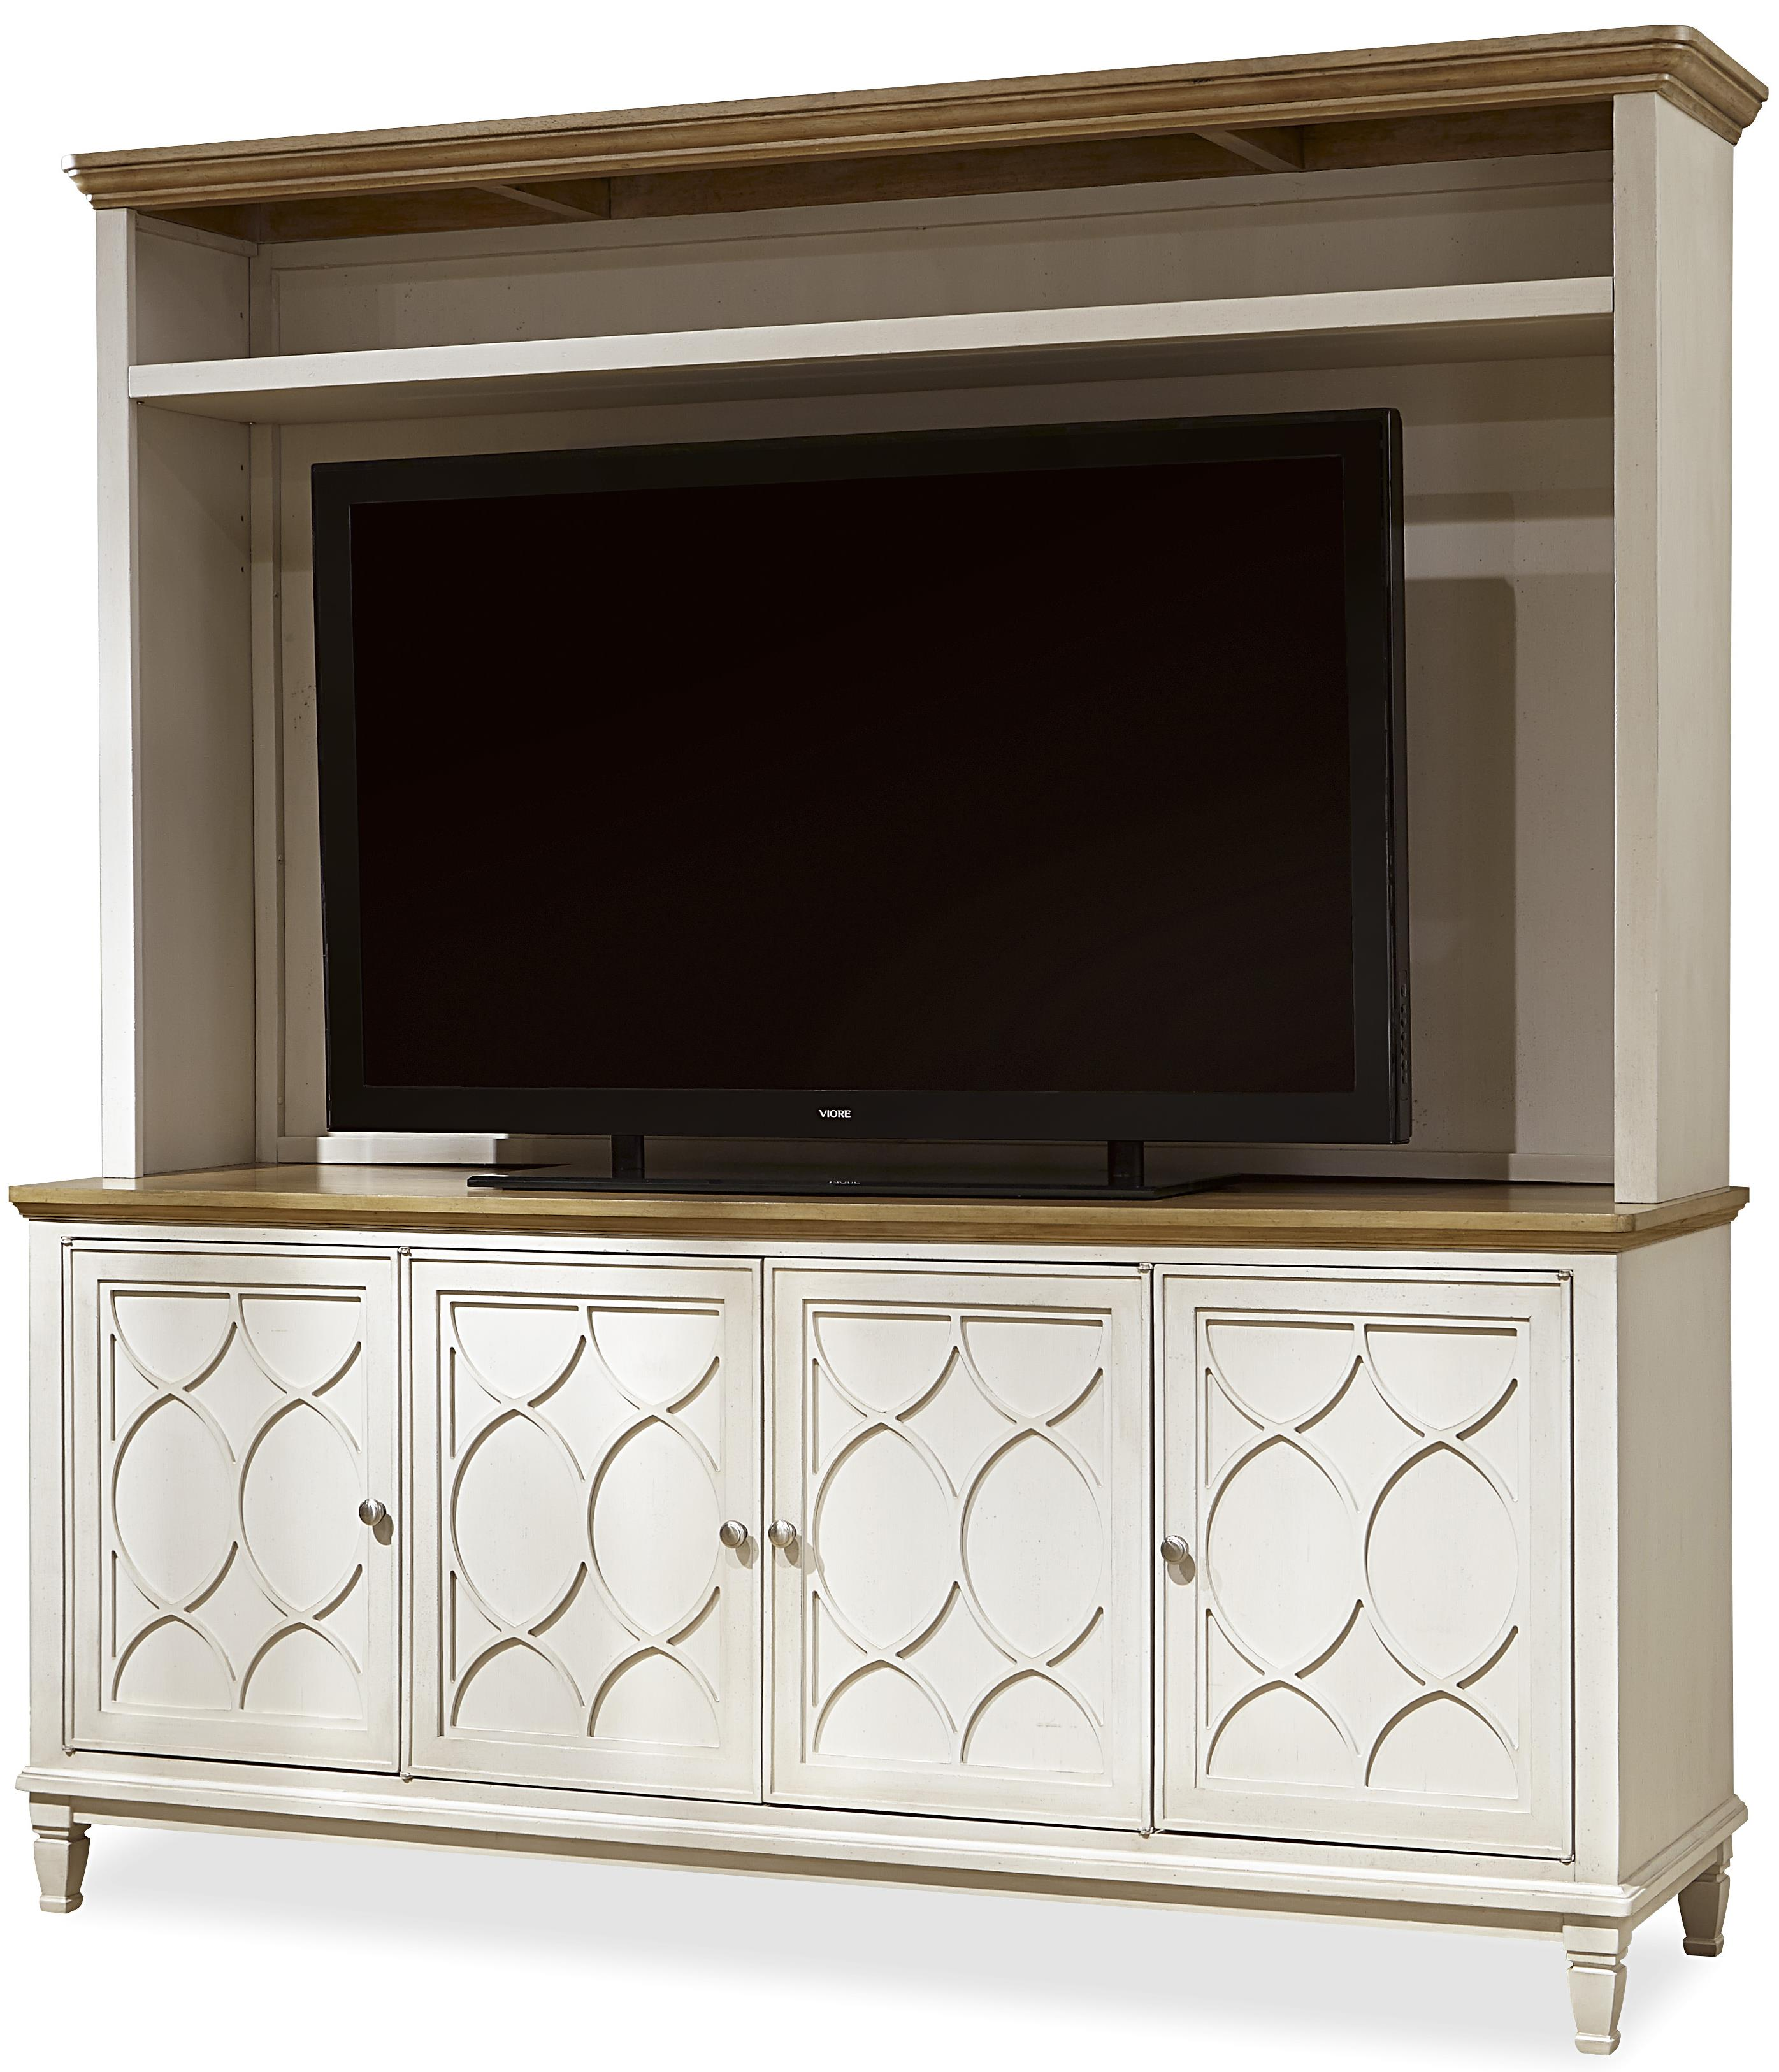 Universal Moderne Muse Console with Deck - Item Number: 414964C